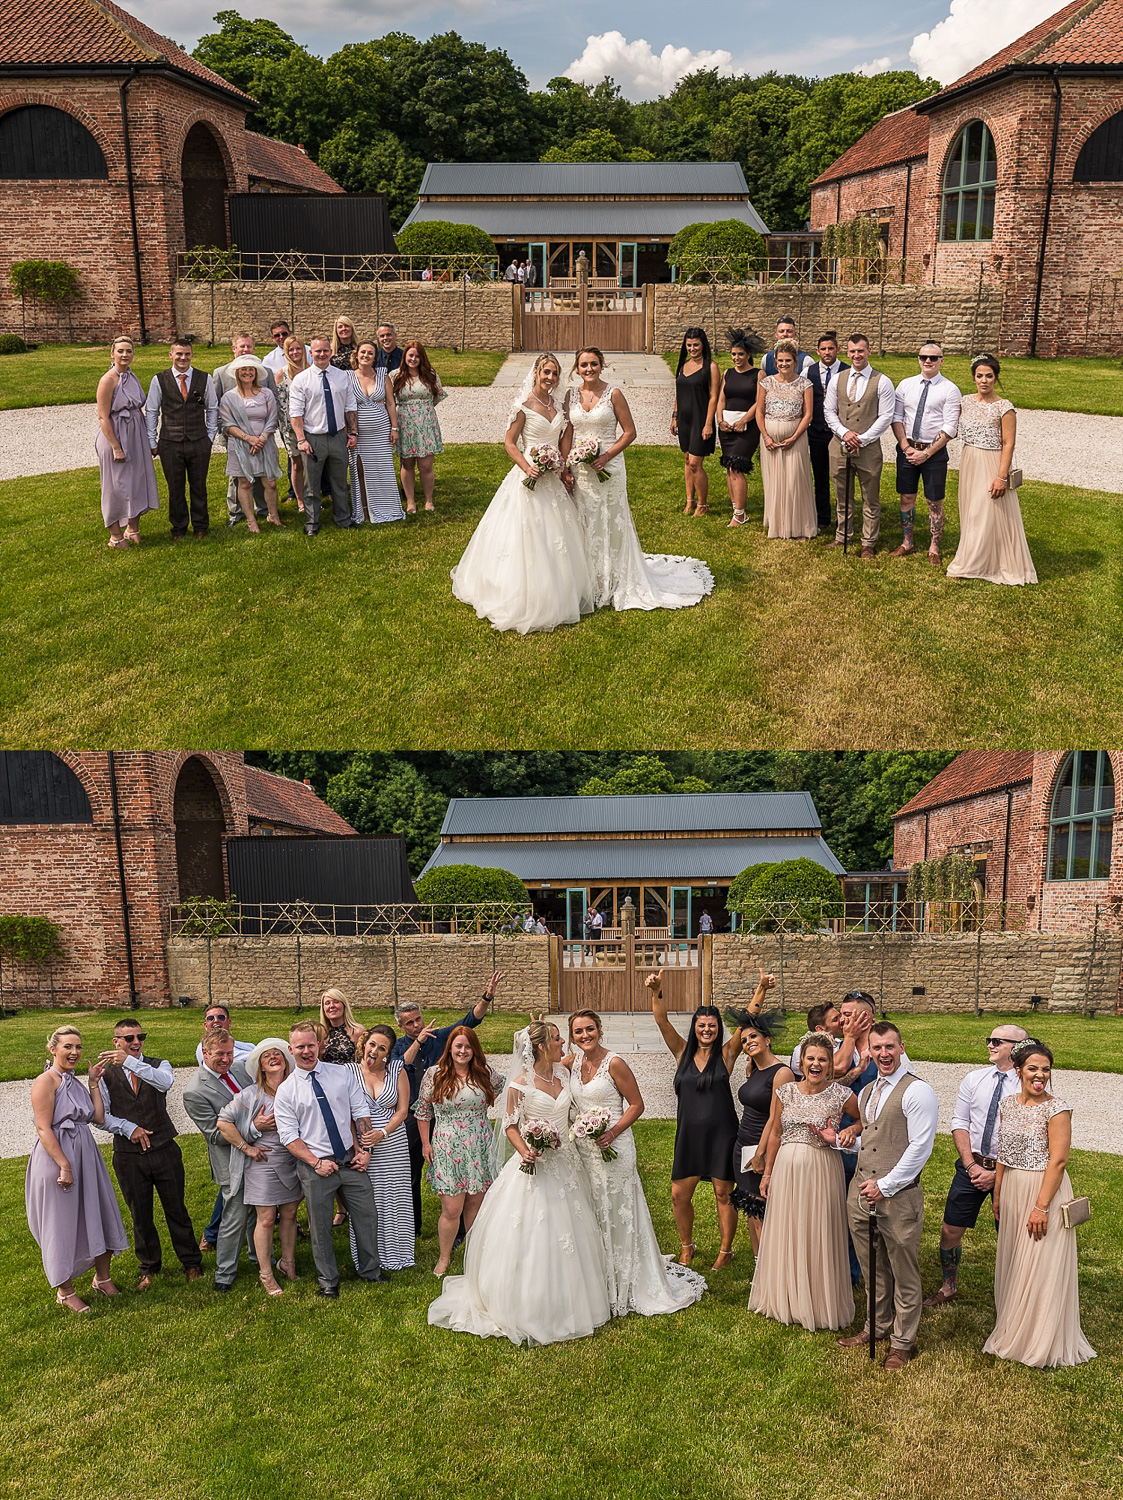 Fun lesbian wedding group photos